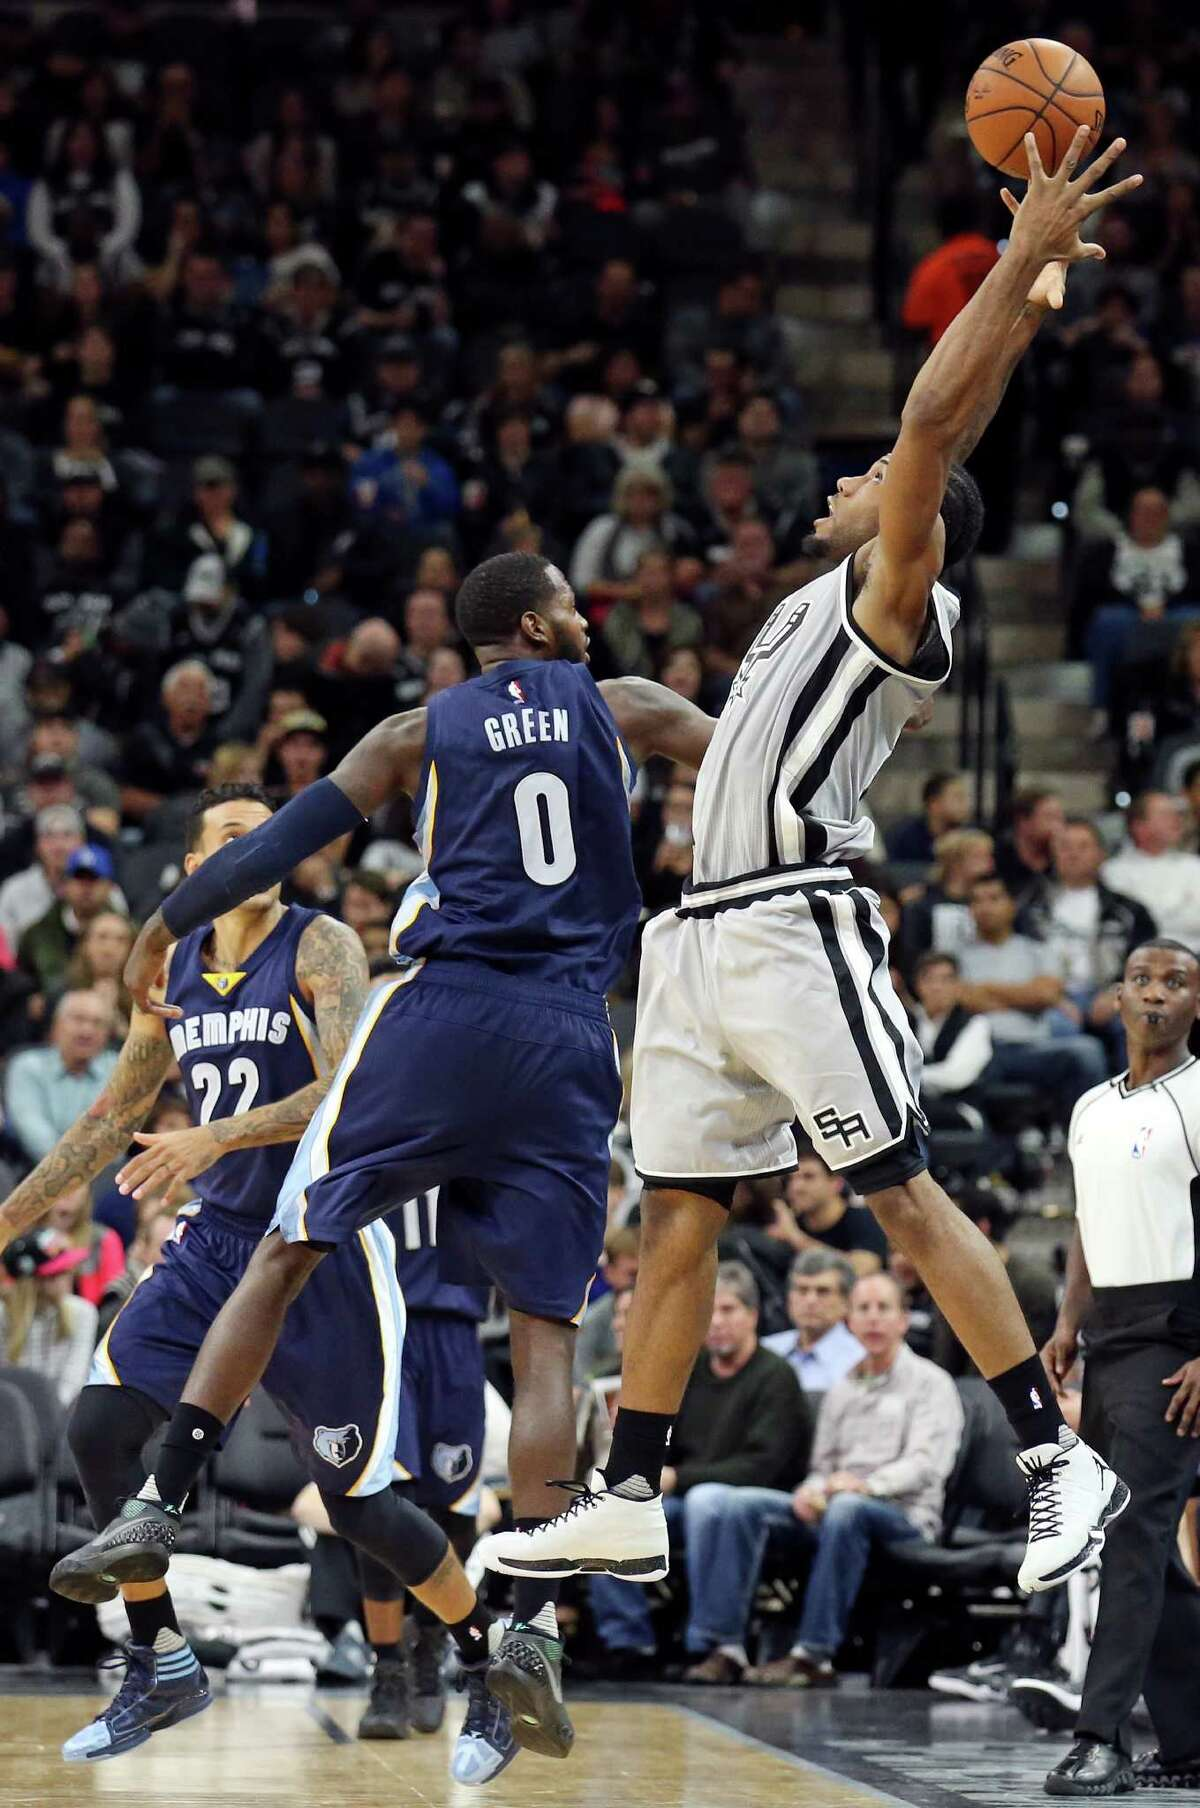 San Antonio Spurs' Kawhi Leonard grabs for a loose ball against Memphis Grizzlies' JaMychal Green during second half action Saturday Nov. 21, 2015 at the AT&T Center. The Spurs won 92-82.